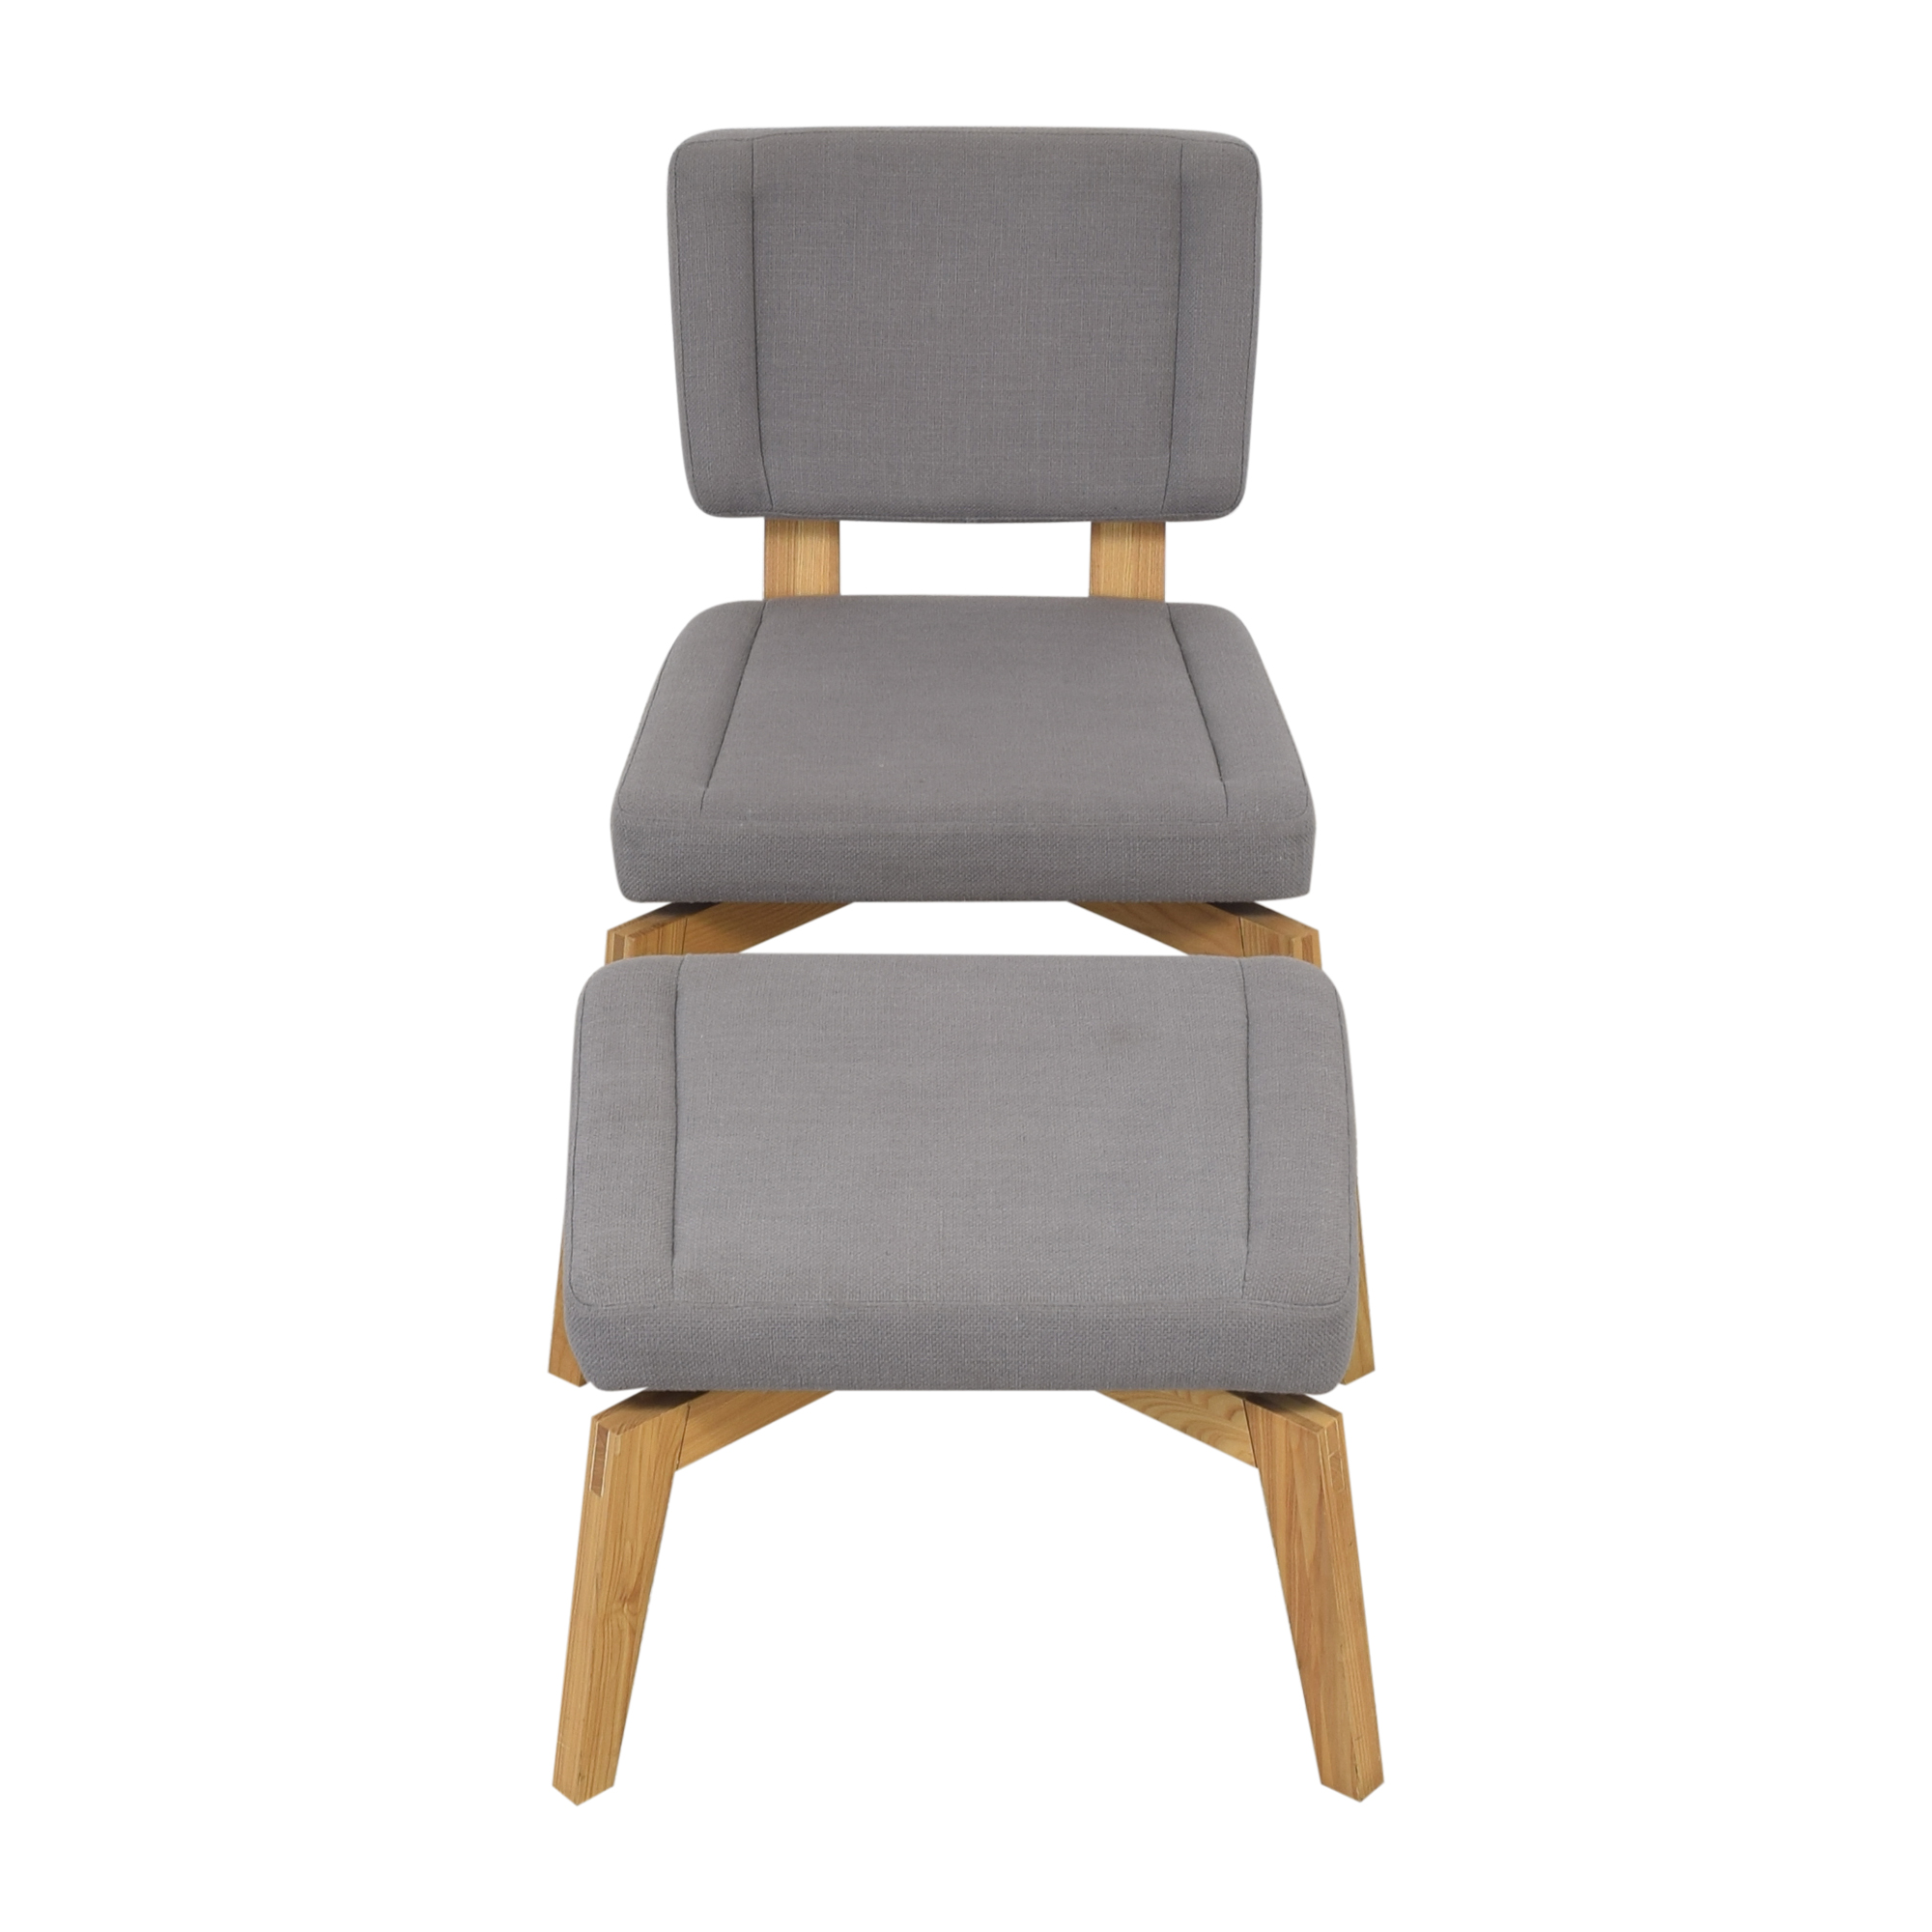 CB2 CB2 Lounge Chair with Ottoman Accent Chairs